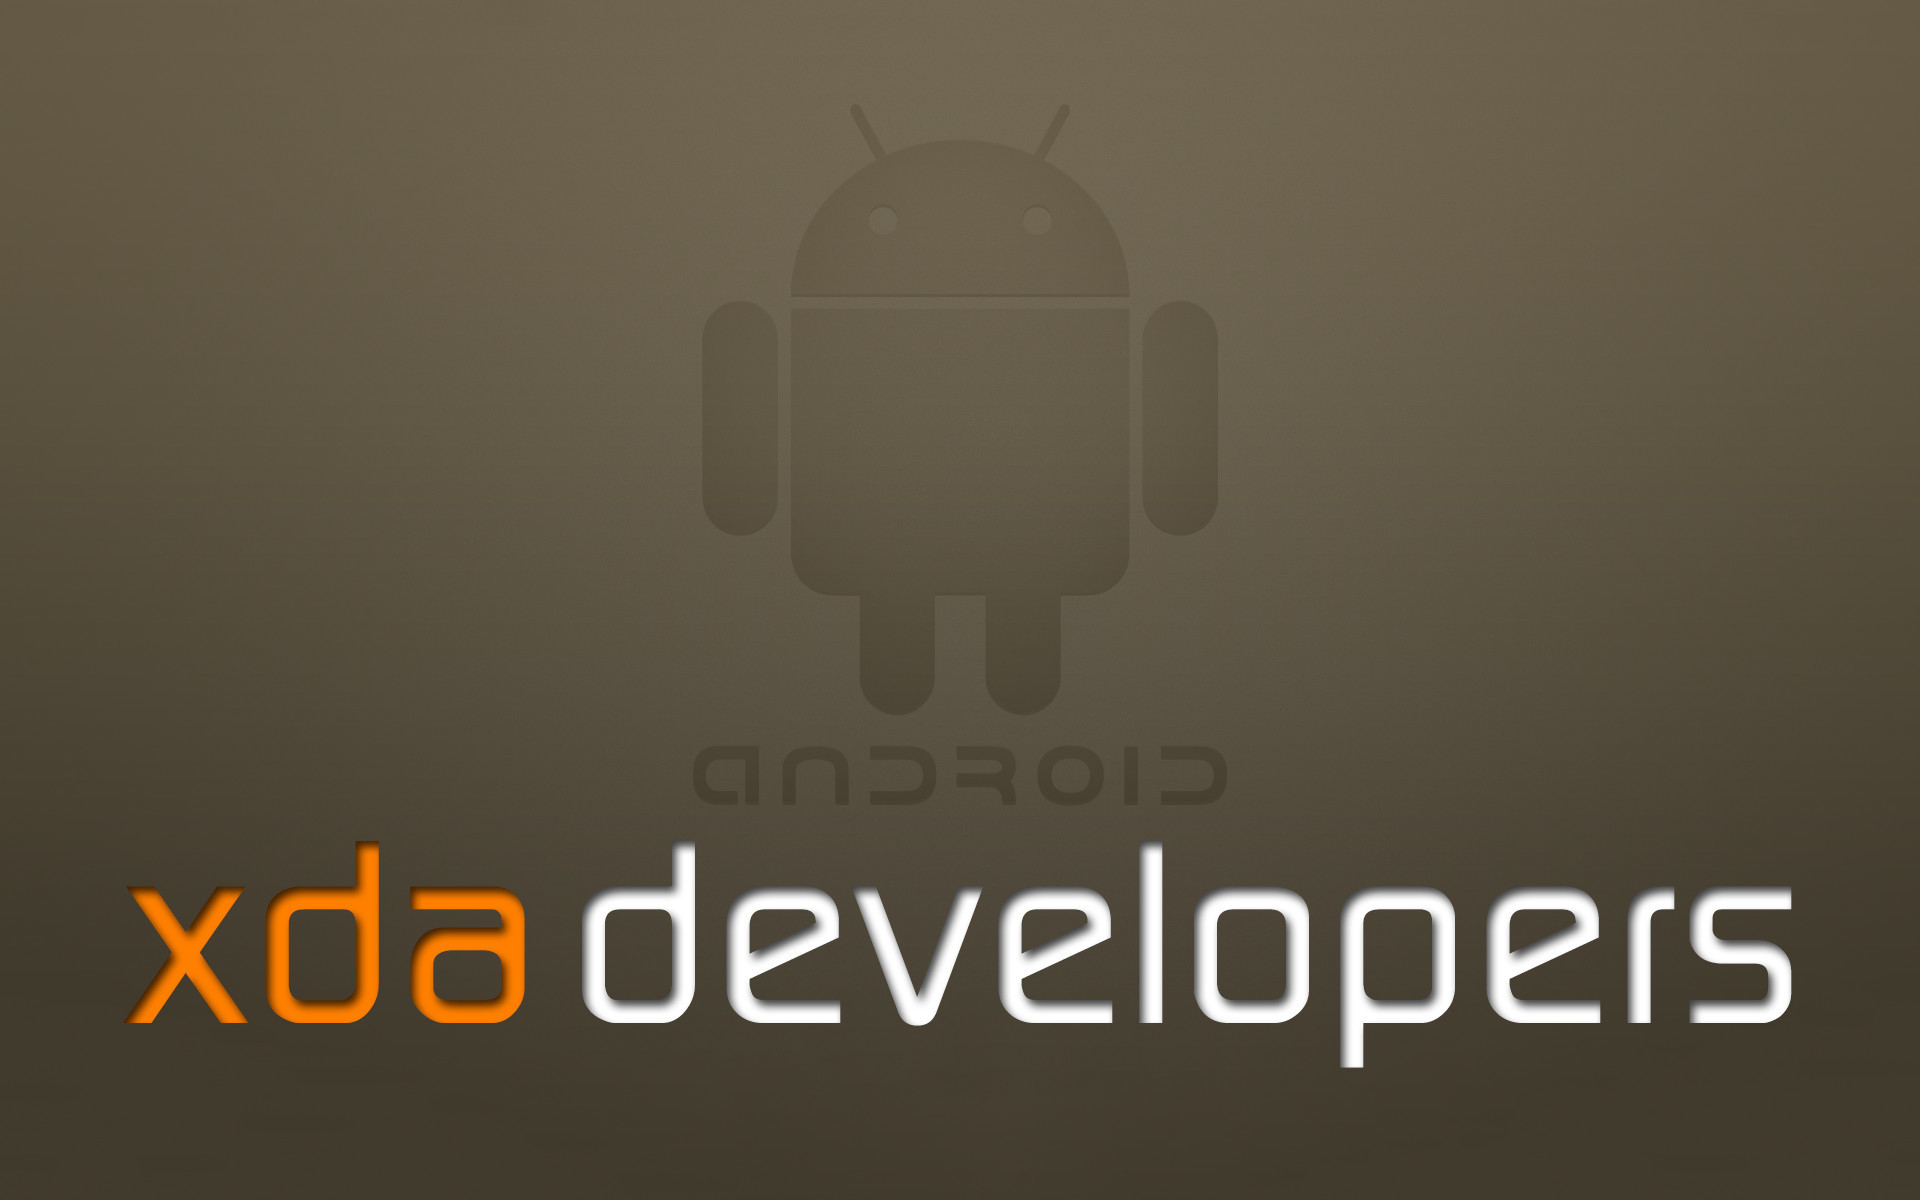 1920x1200 ... Android xda developers full HD wallpaper by divaksh